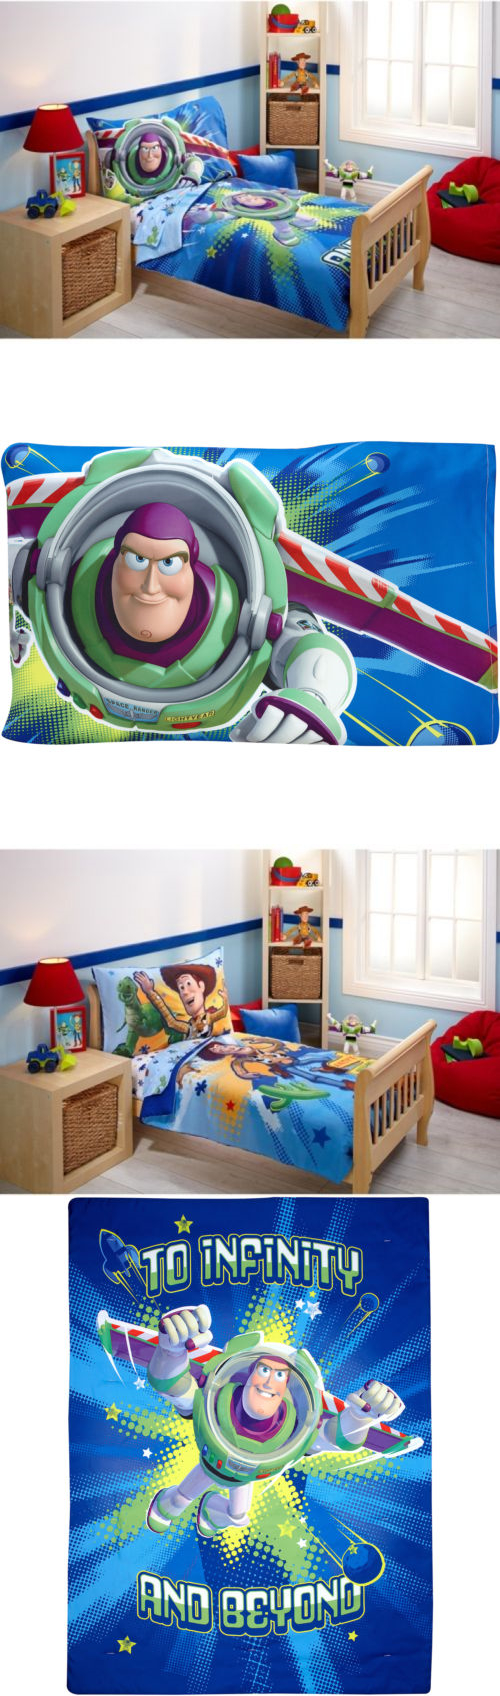 Toy story toddler bedding - Bedding Sets 66731 Toy Story Power Up 4 Piece Toddler Bedding Set Quilted